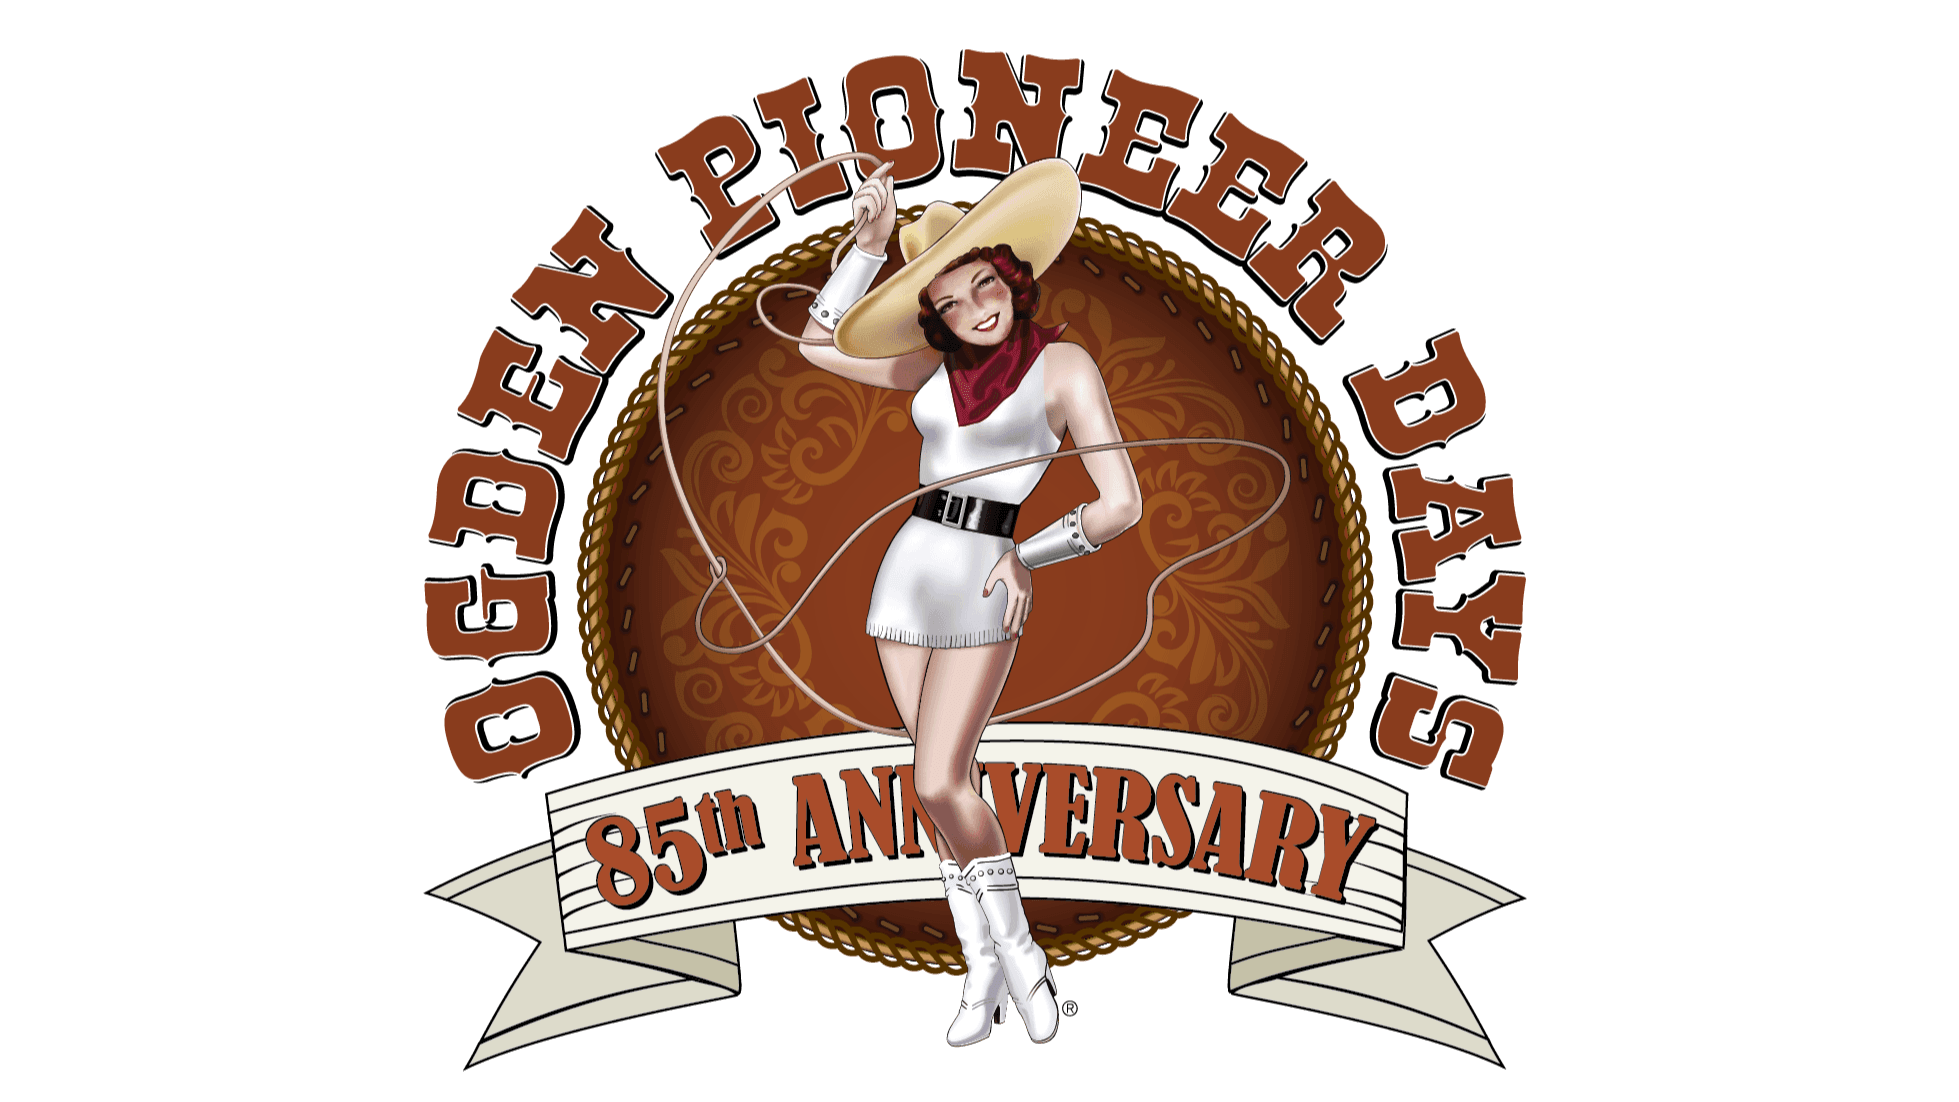 OgdenPioneerDays_85thAnniversary RP USE_SMALL 2